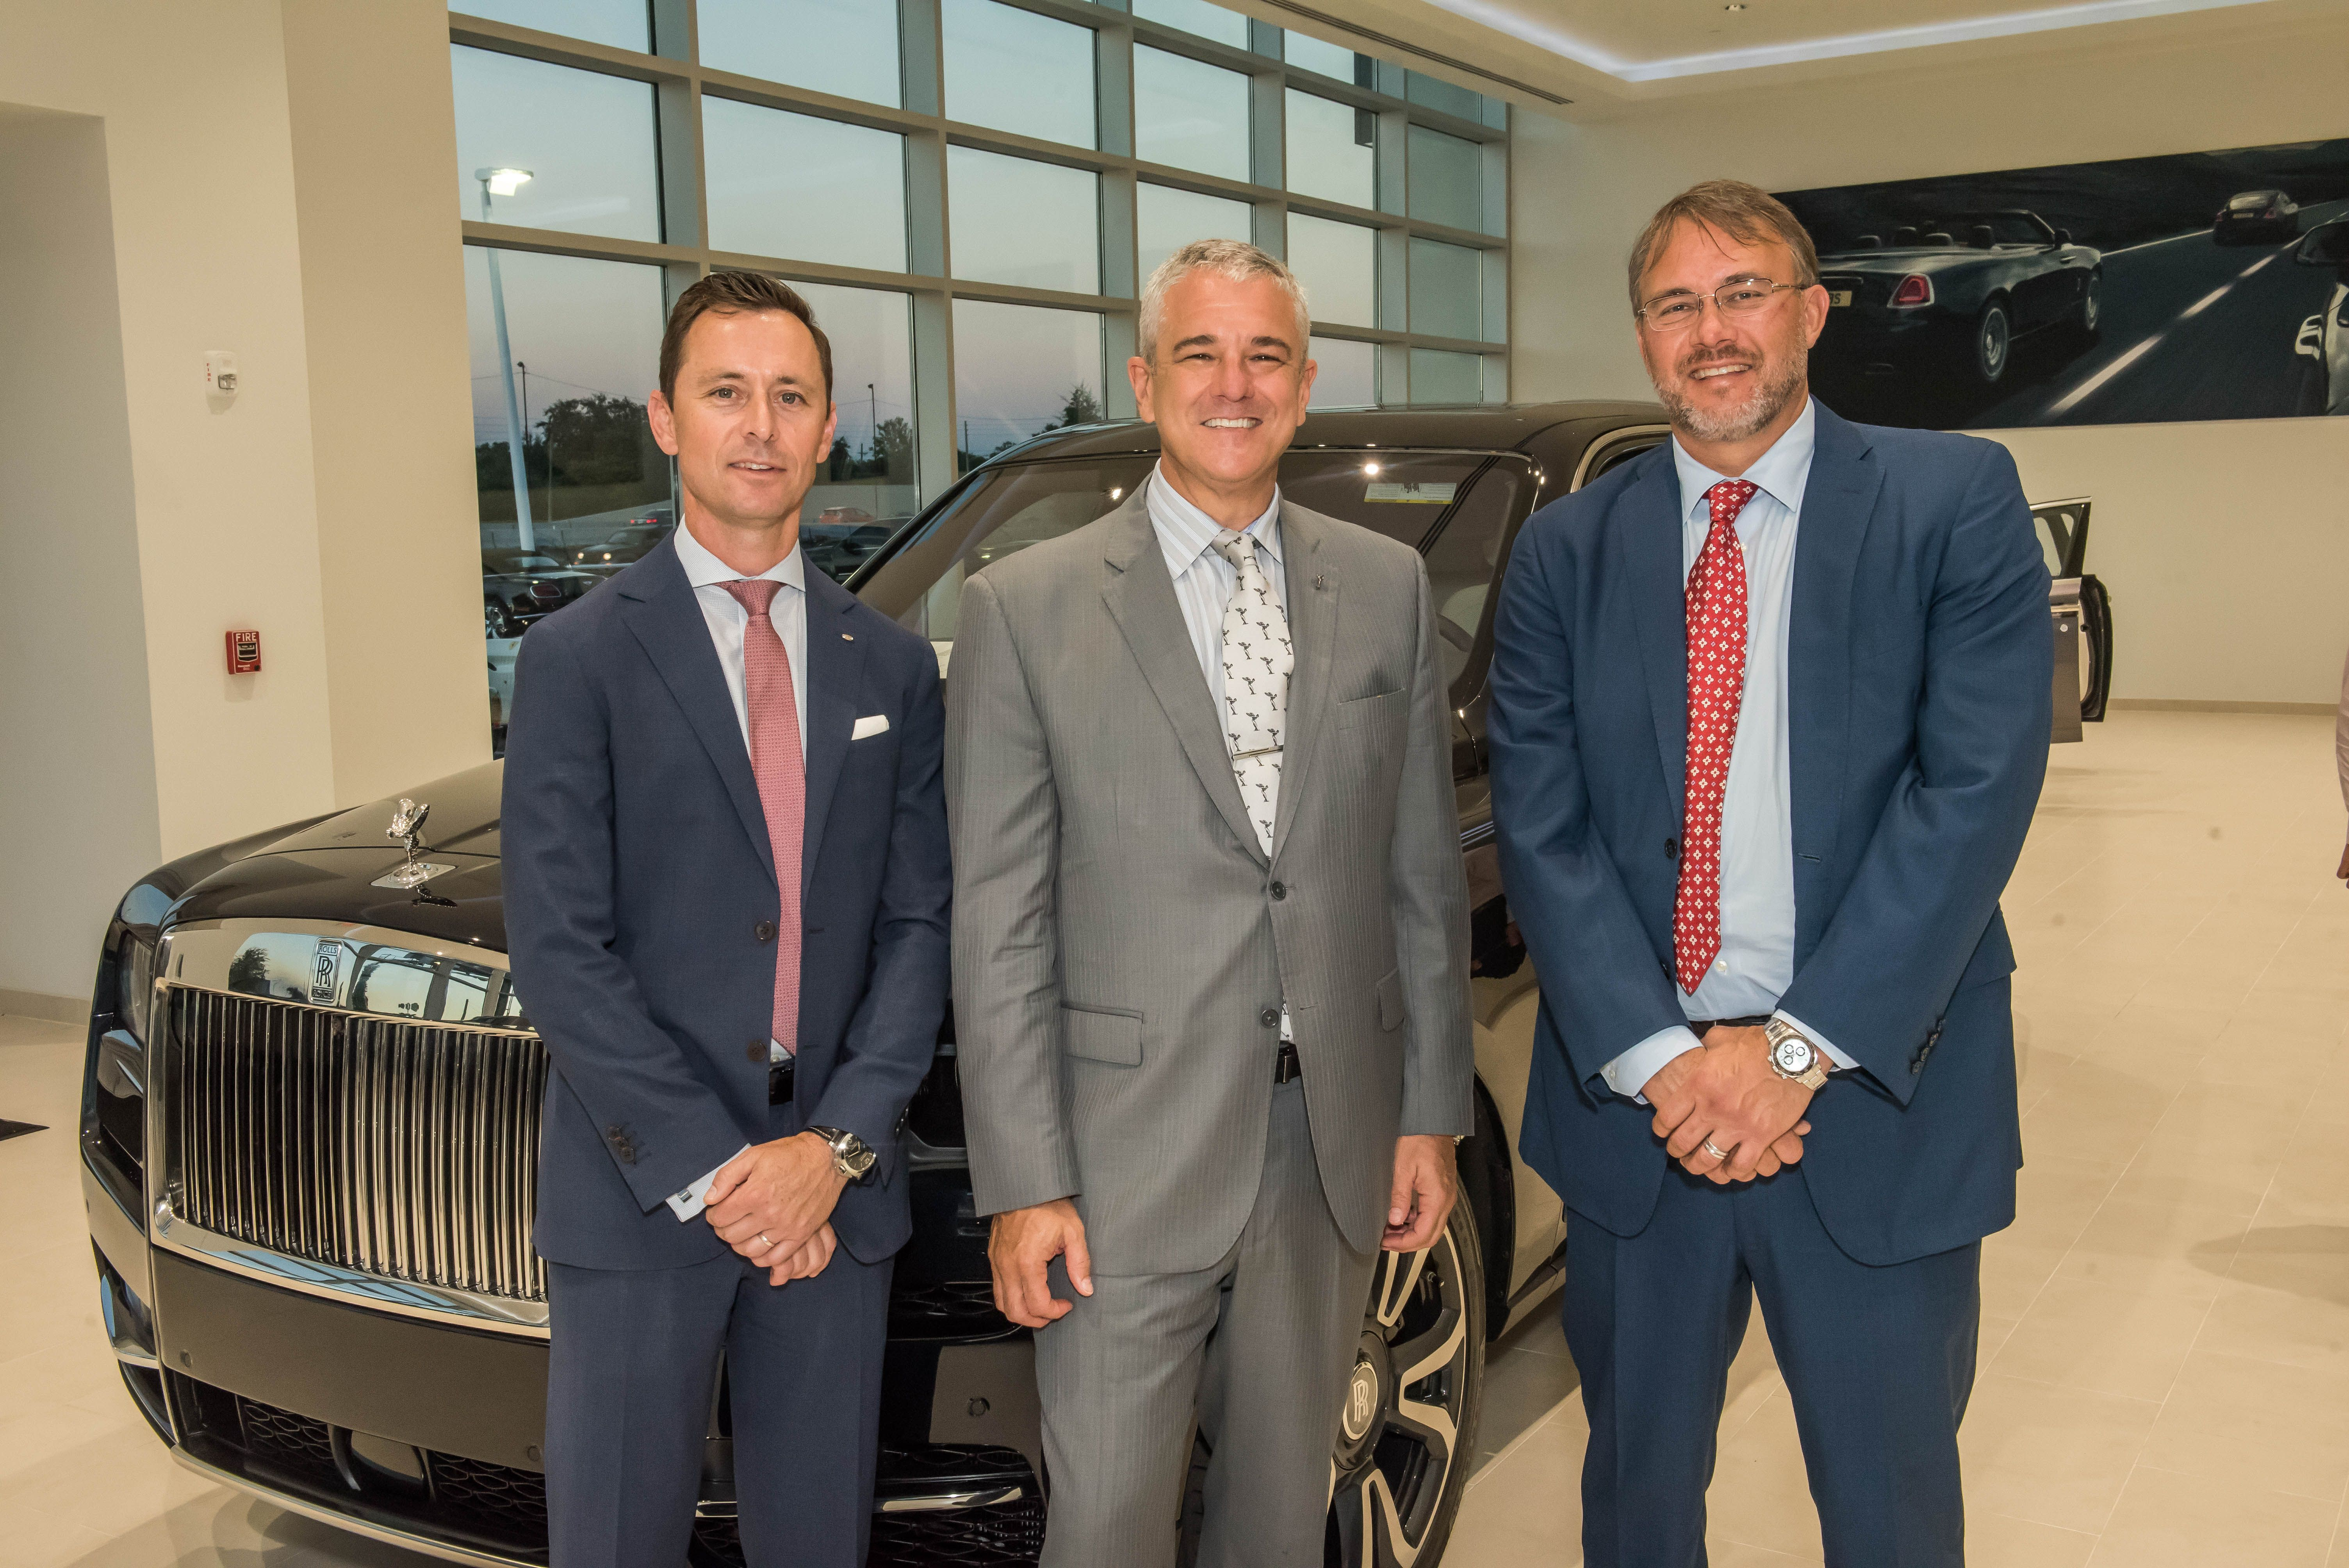 Tbt Thanks Again To Everyone Who Joined Us For Our Vip Grandopening Event At Our New Facility Located Used Luxury Cars Buy Used Cars Rolls Royce Models